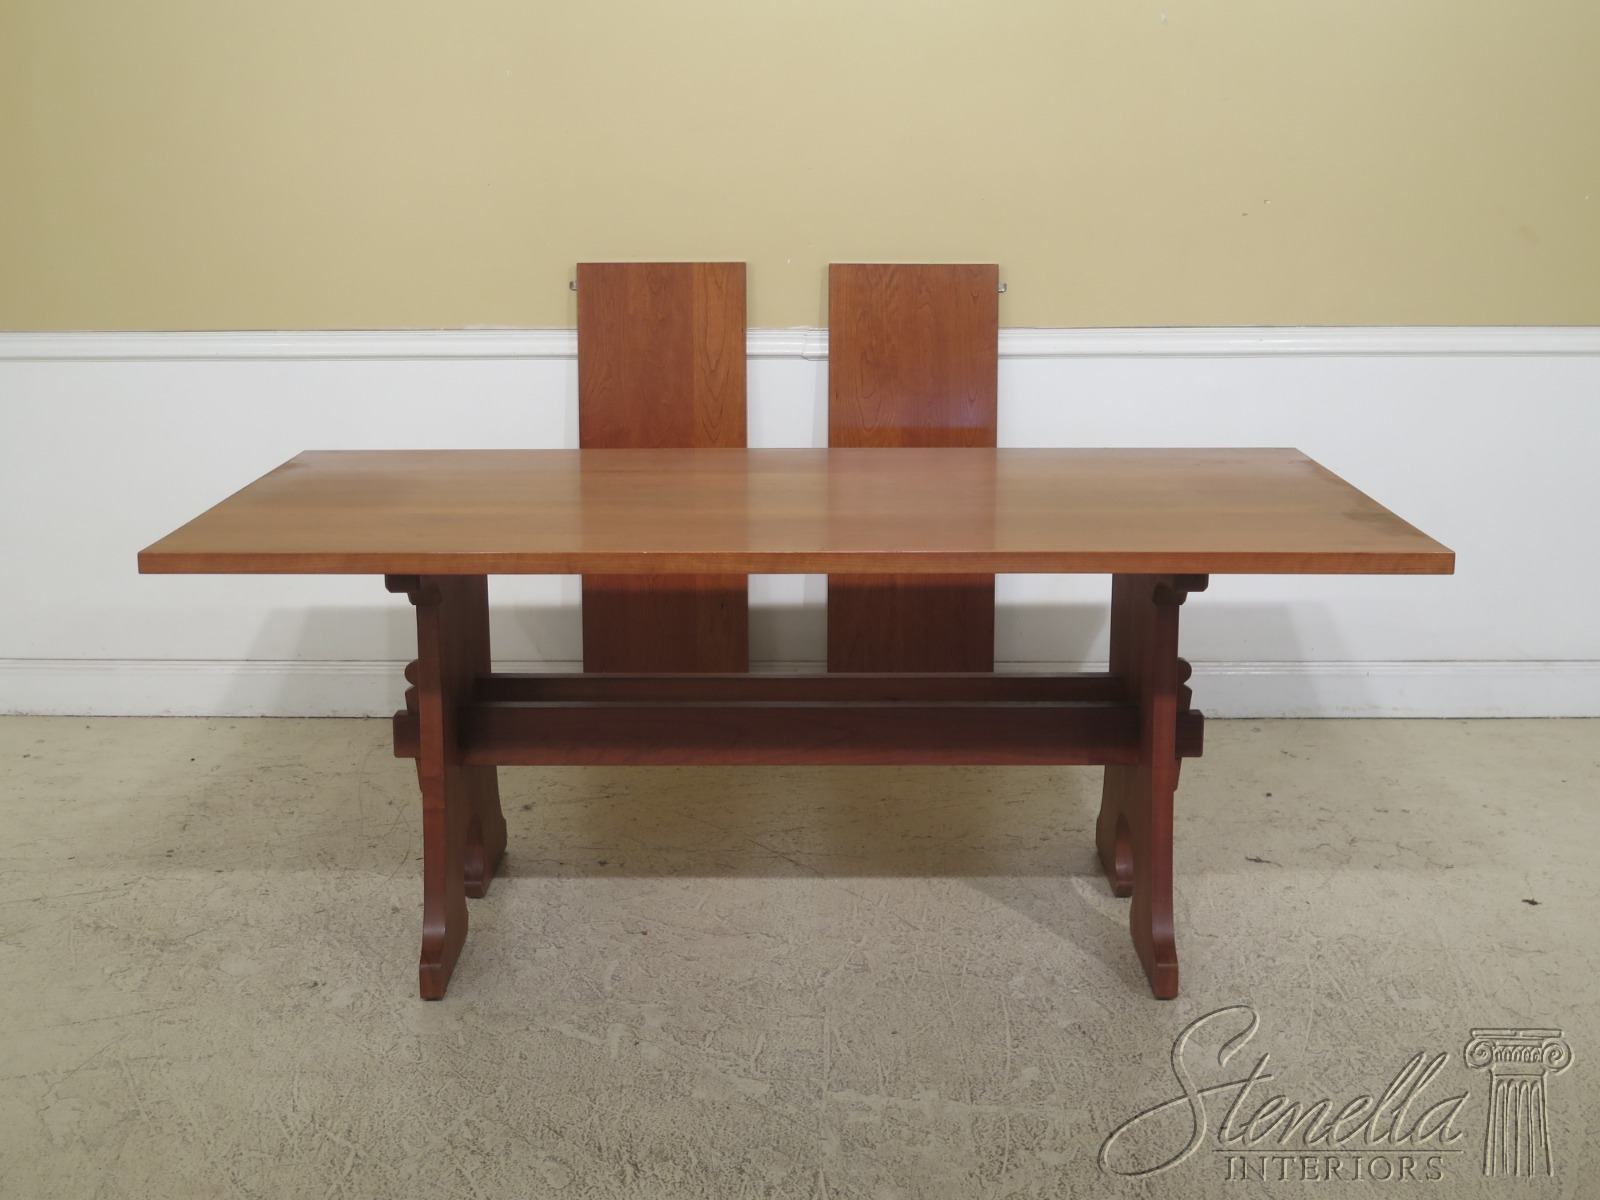 Details about F31010EC: STICKLEY Solid Cherry Mission Style Dining Room  Table